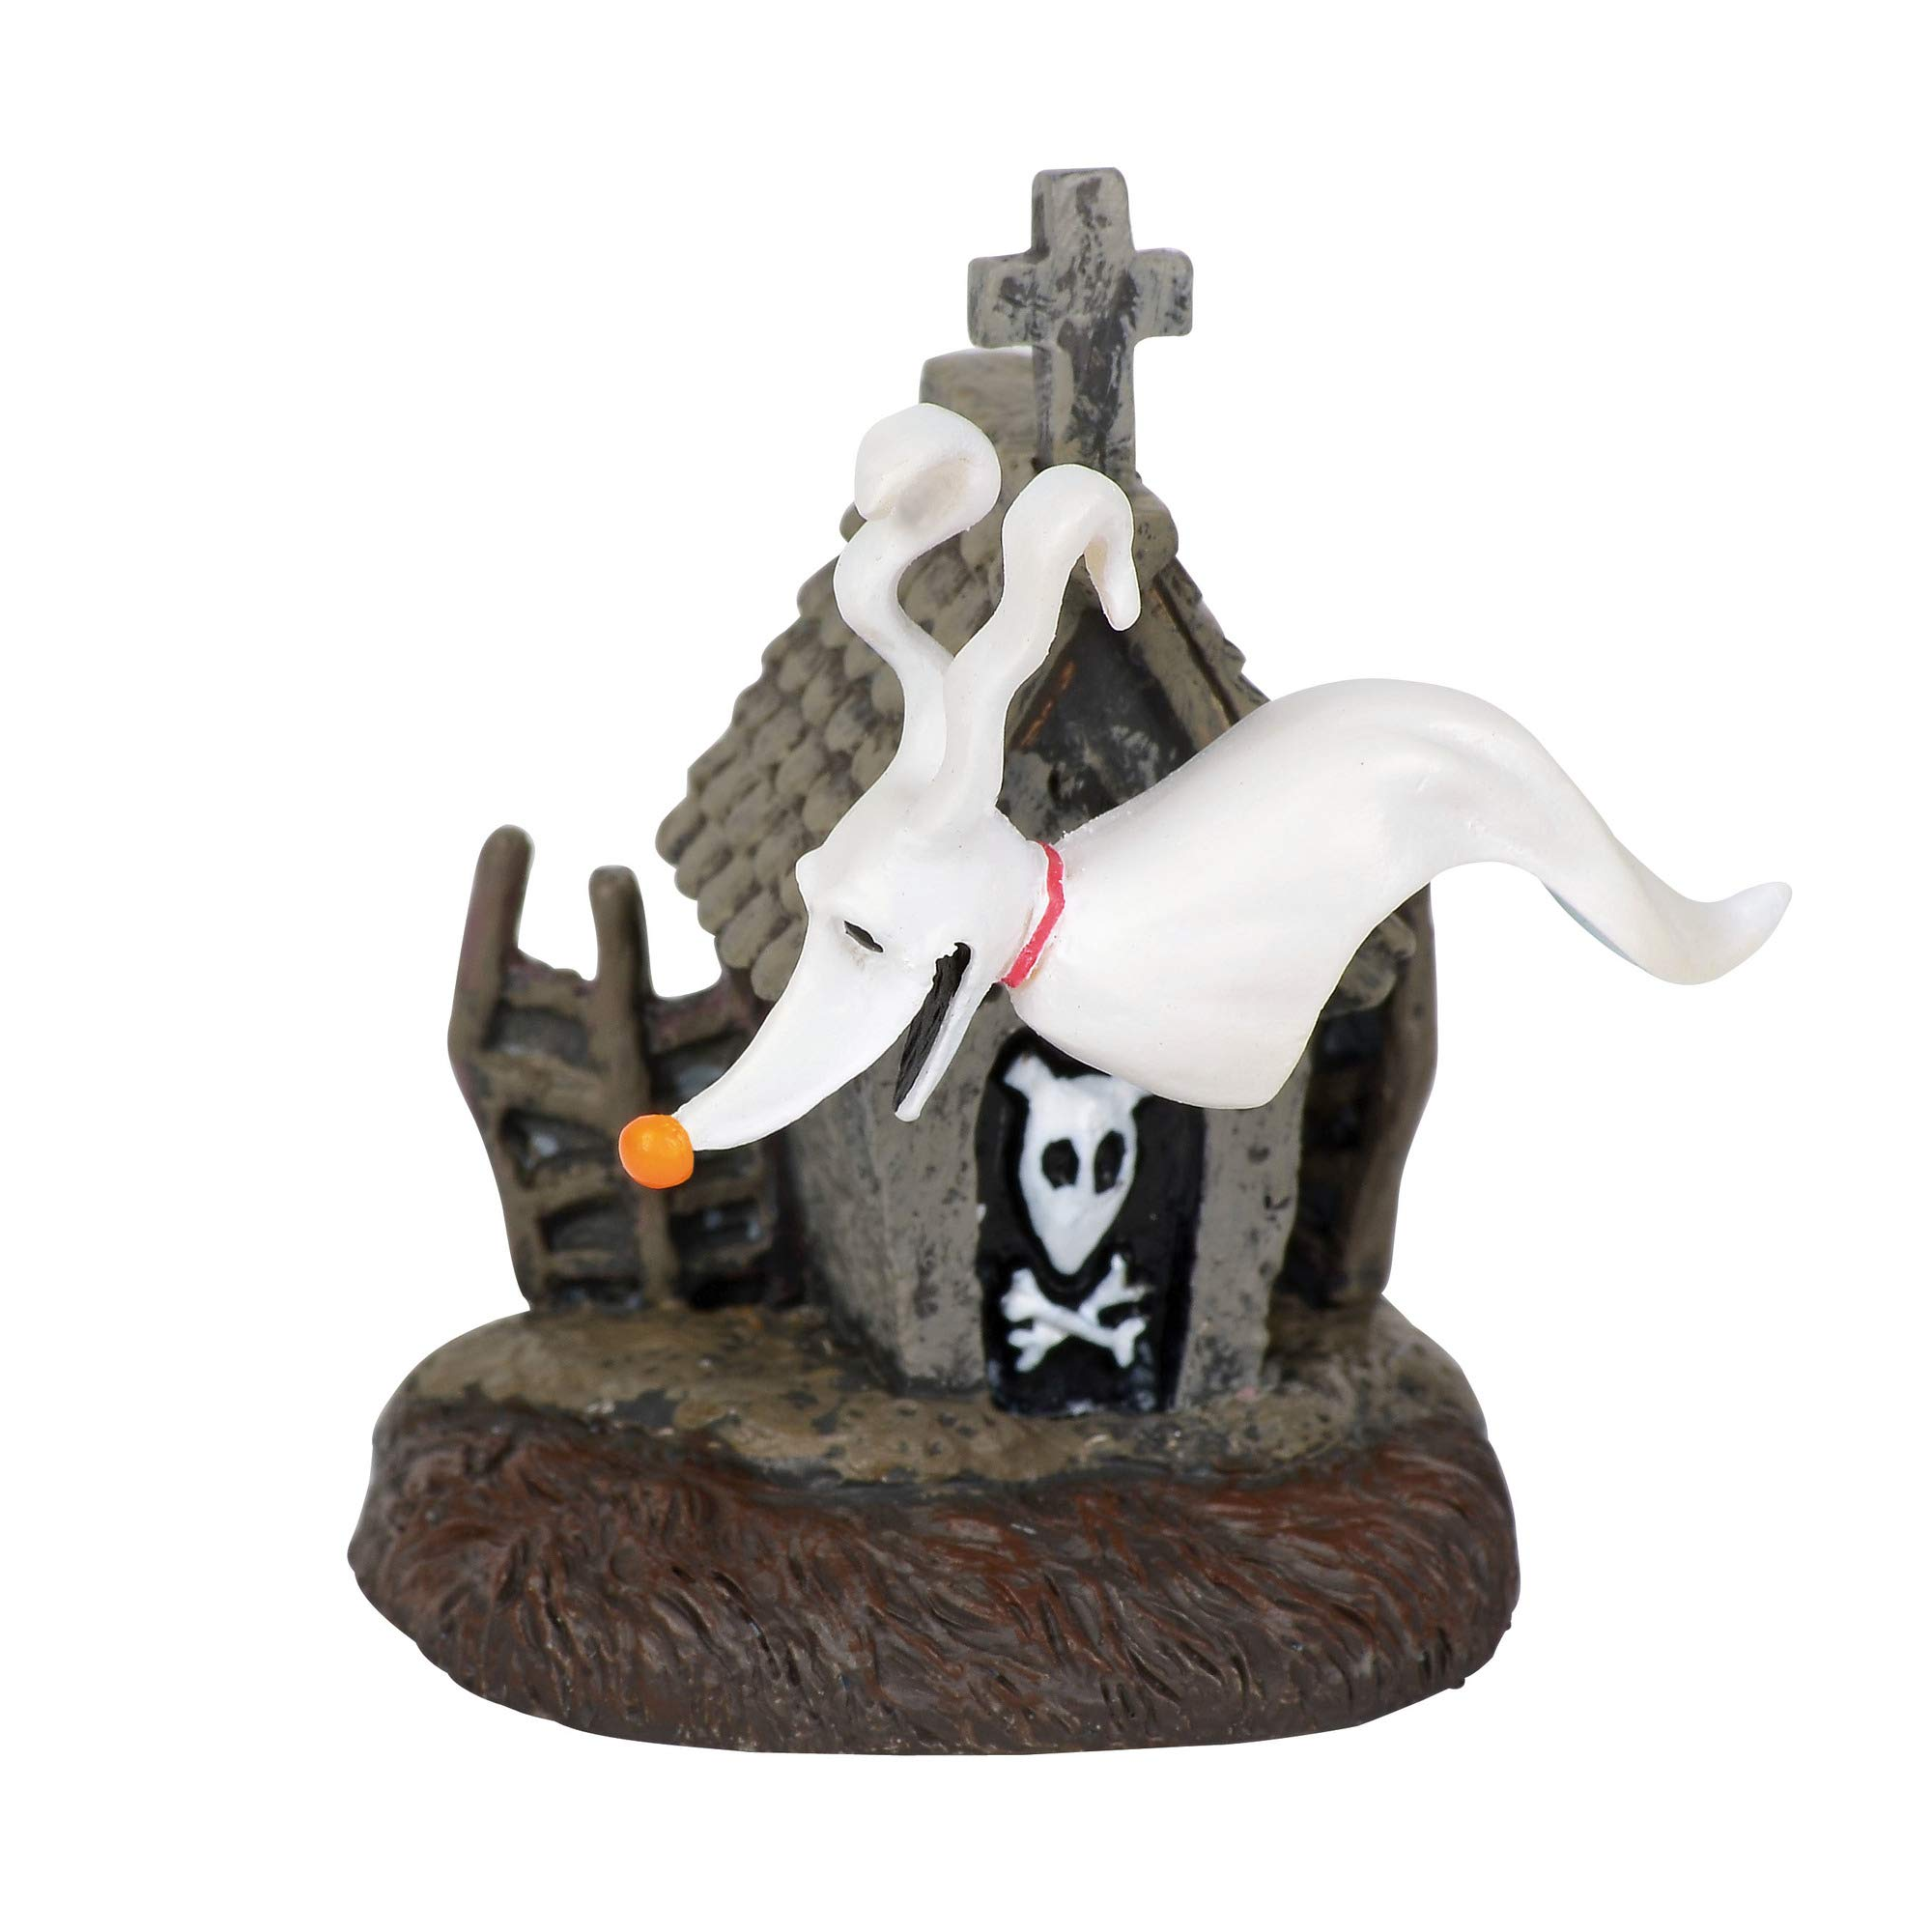 Department56 Nightmare Before Christmas Village Accessories Zero and his Dog House Figurine, 2'', Multicolor by Department56